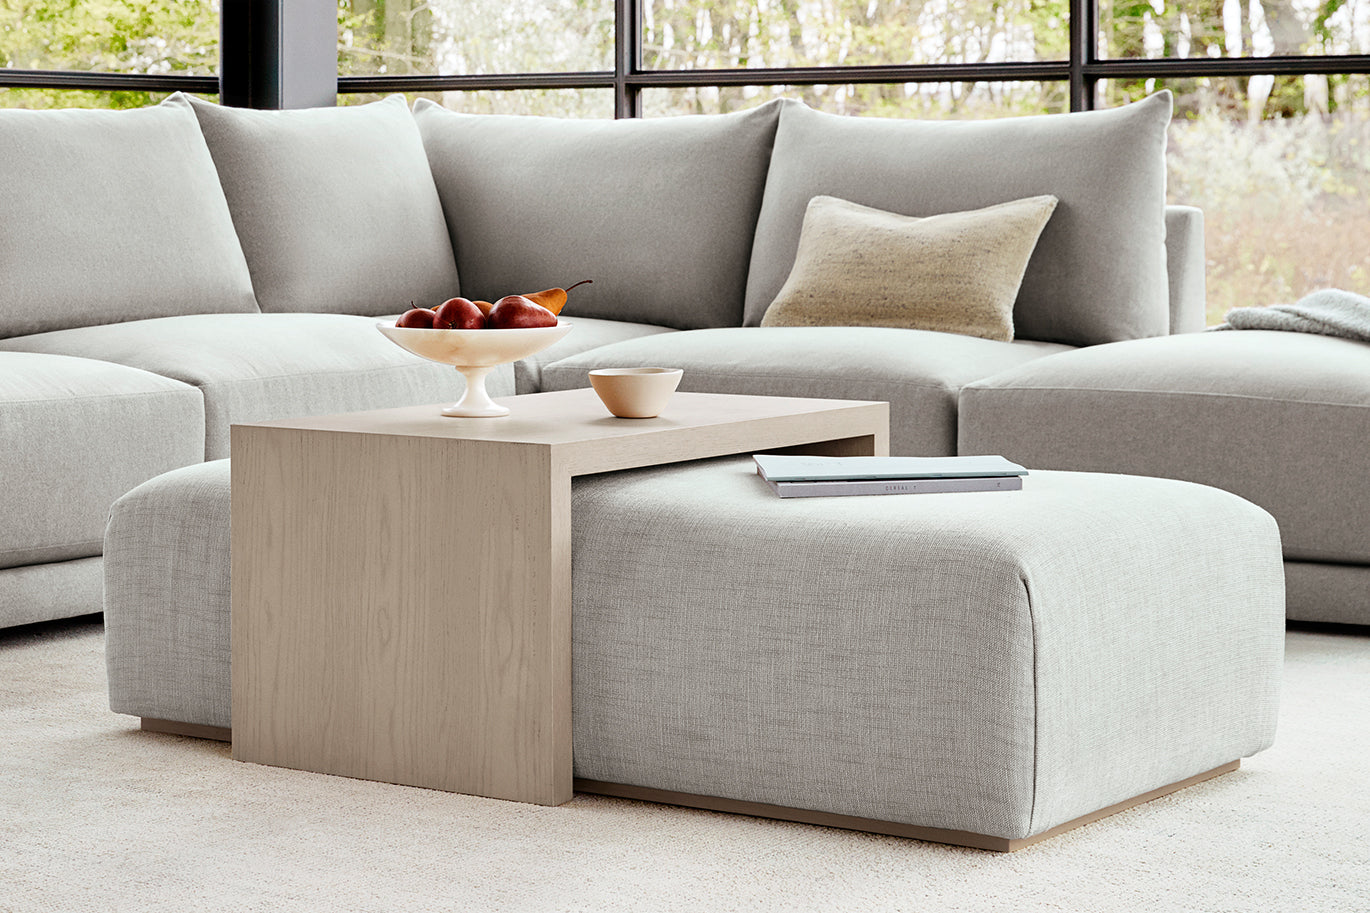 The Bowery Coffee Table Ottoman in Nickel Performance Chenille and White Oak finish